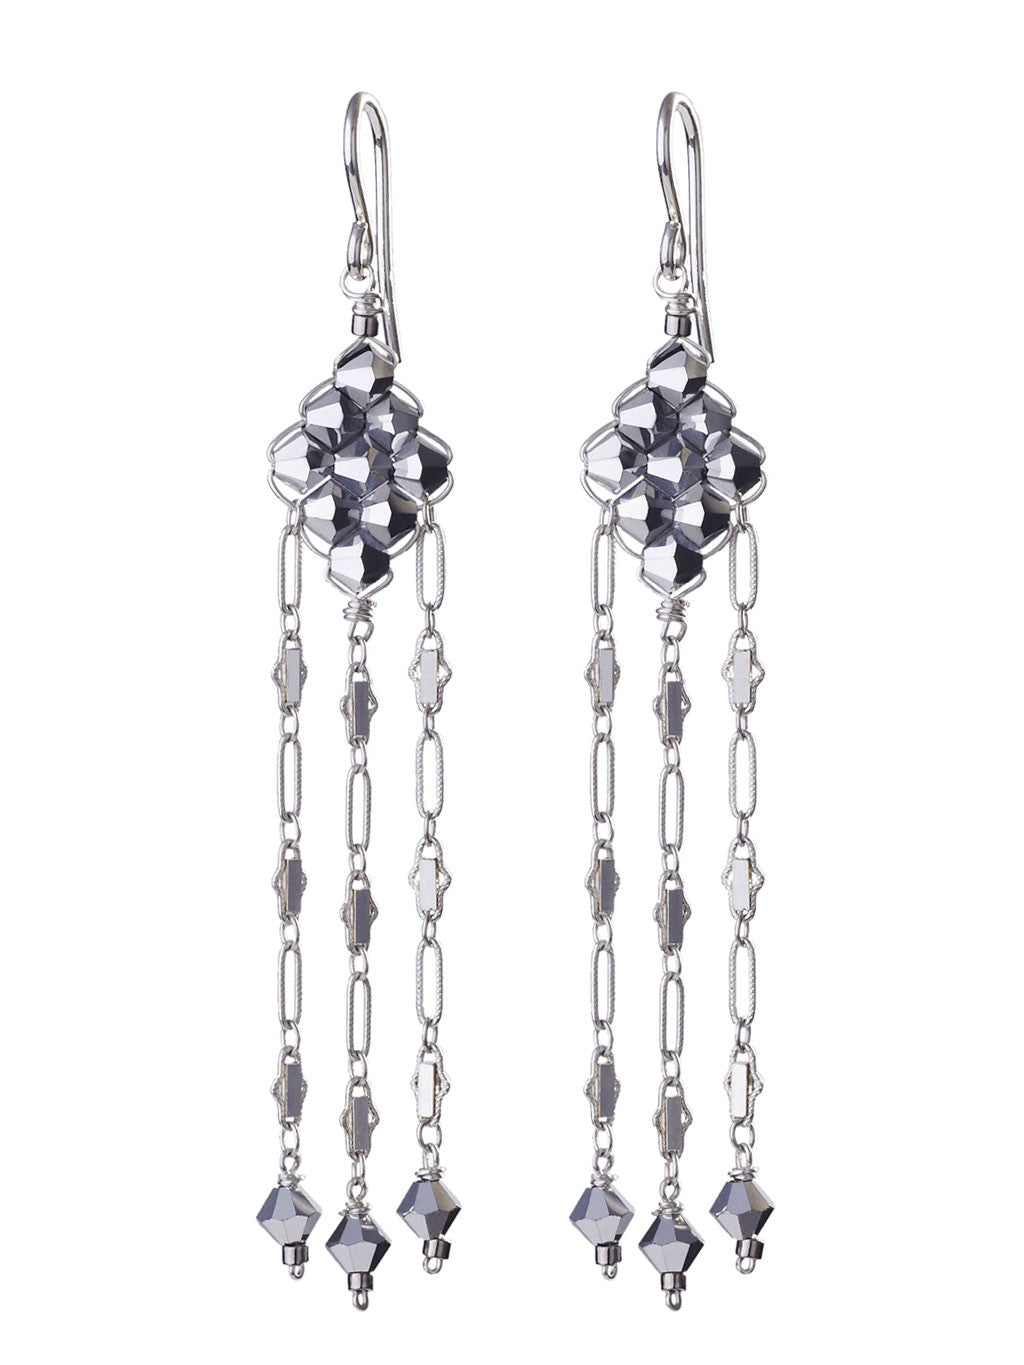 The Garbo Chandelier - Silver